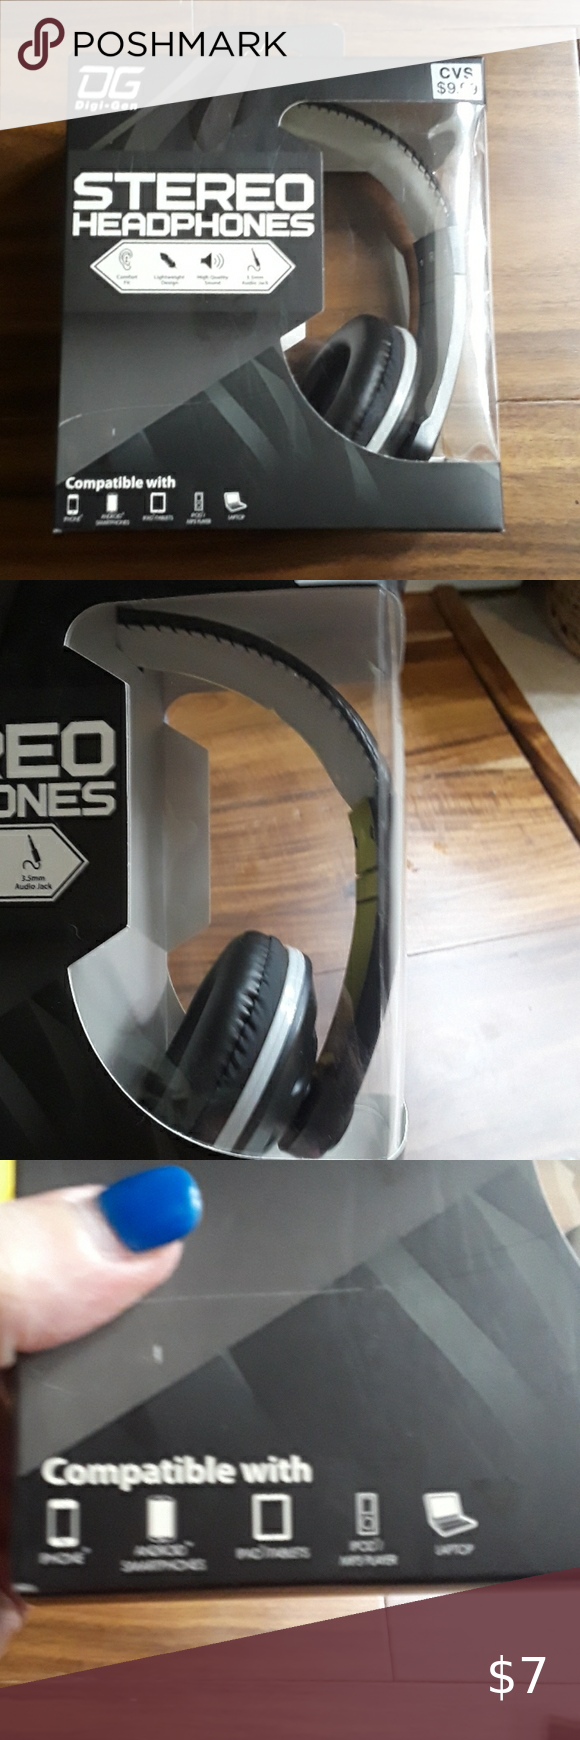 New In Box Headphones Headphones Office Colors Home Office Colors